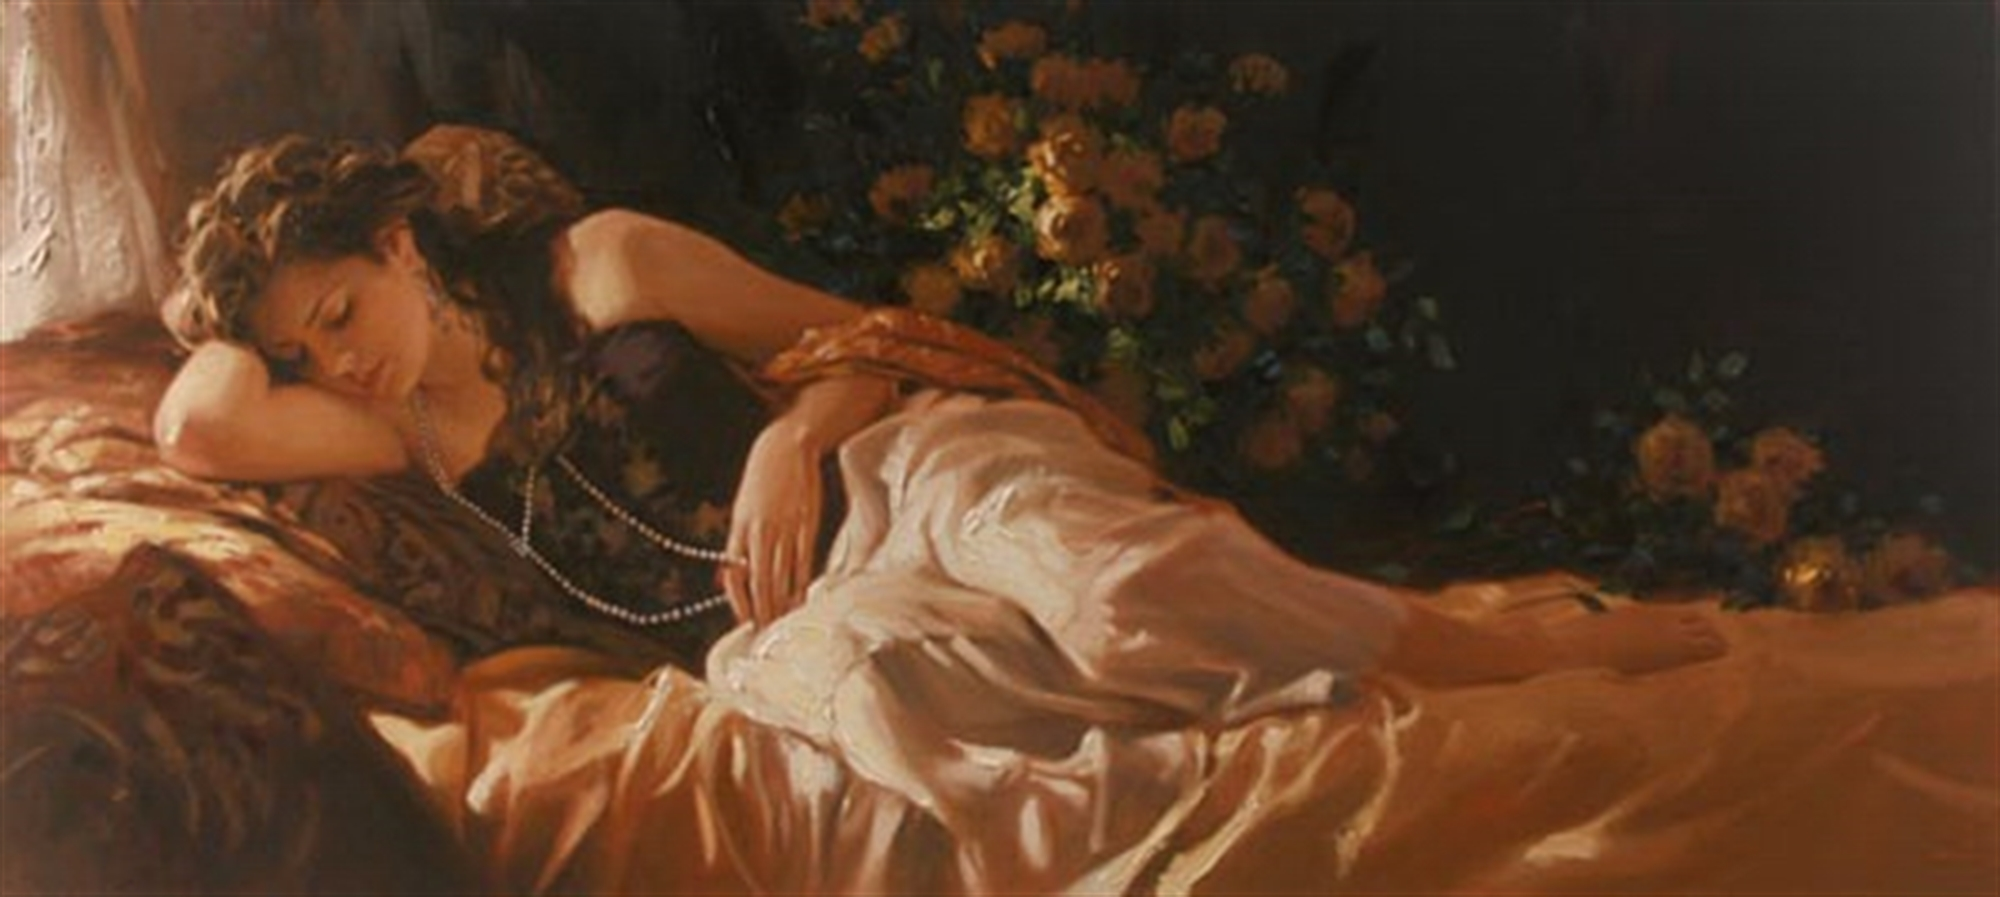 Amber and Pearls by Richard Johnson